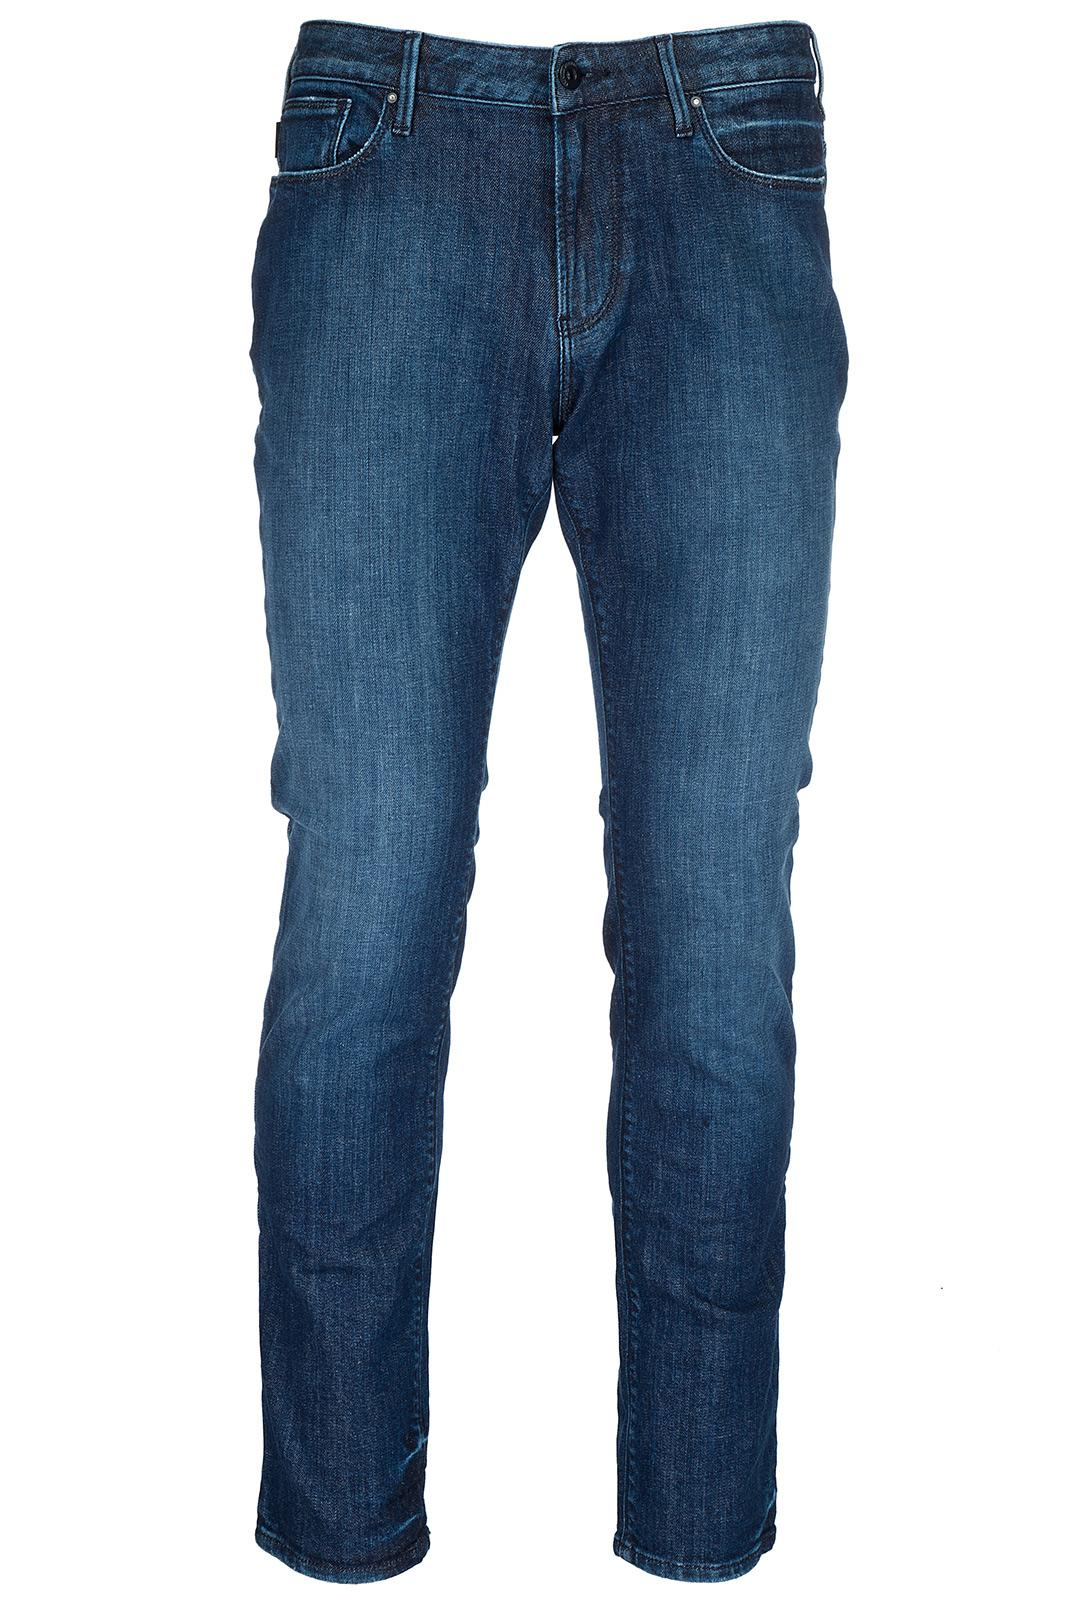 Emporio Armani Men's Jeans Denim In Blue